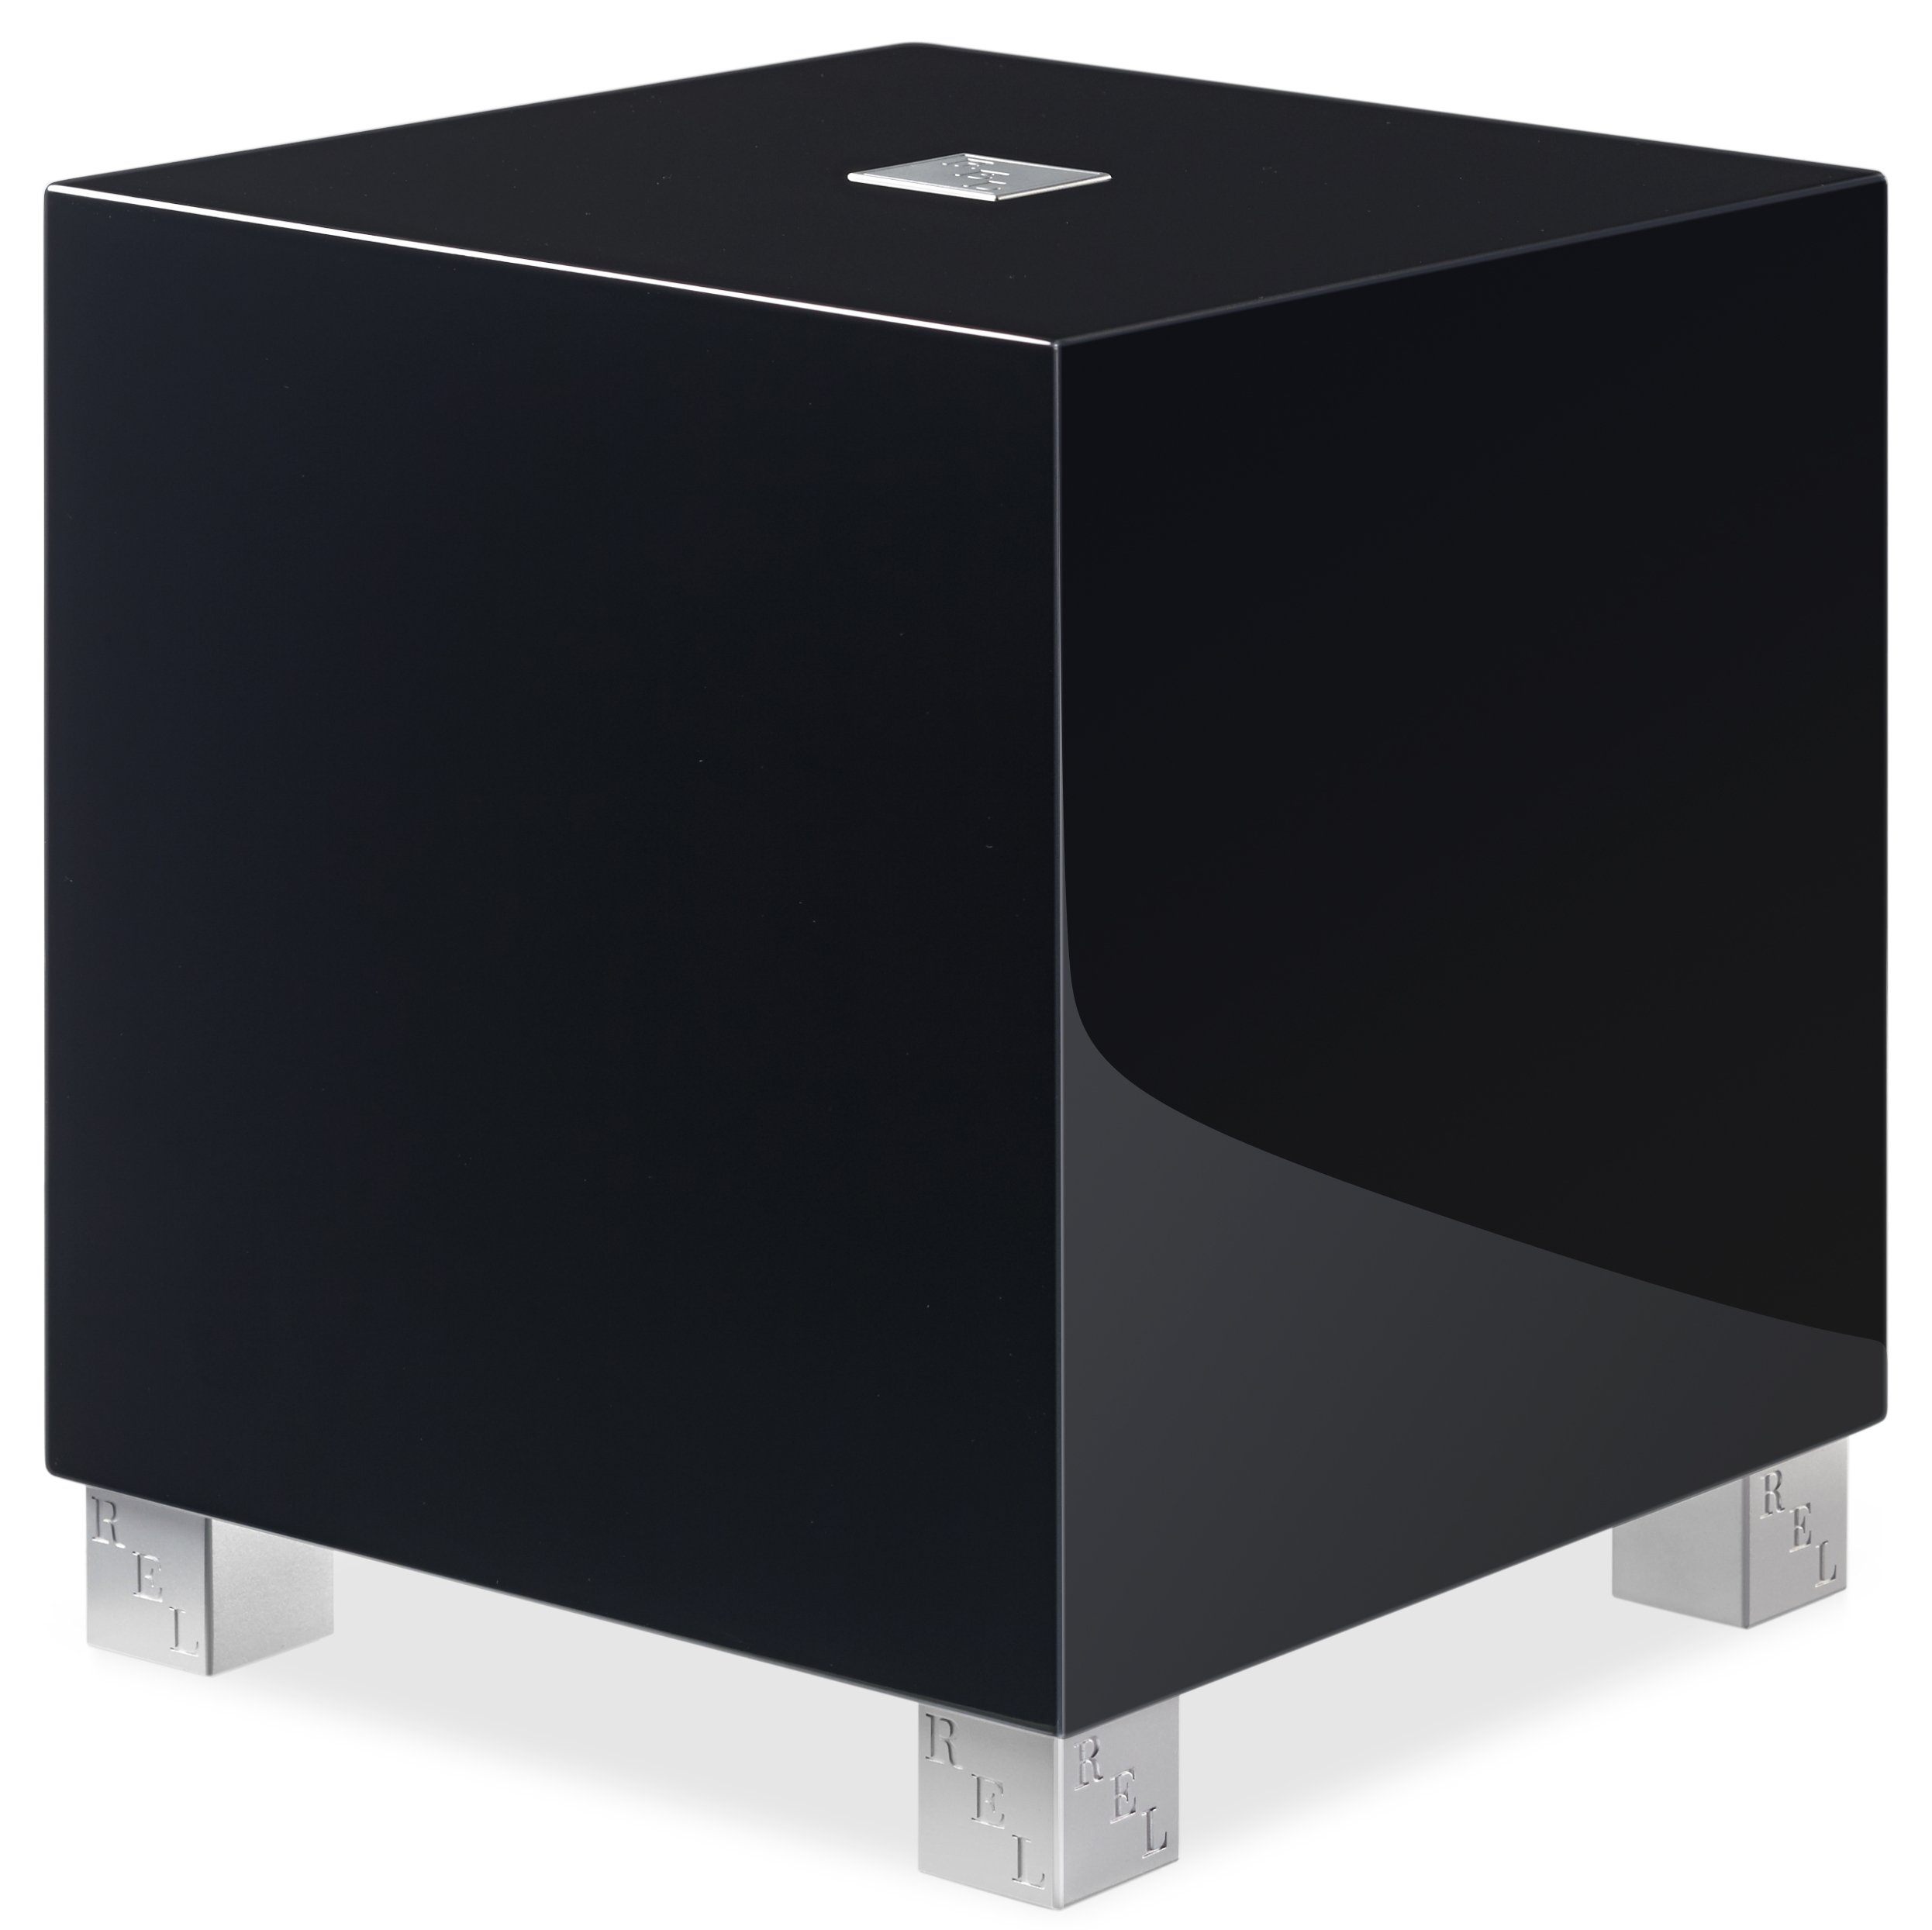 REL Acoustics T/5i Subwoofer, 8 inch Down-Firing Driver, Arrow wireless port, High Gloss Black